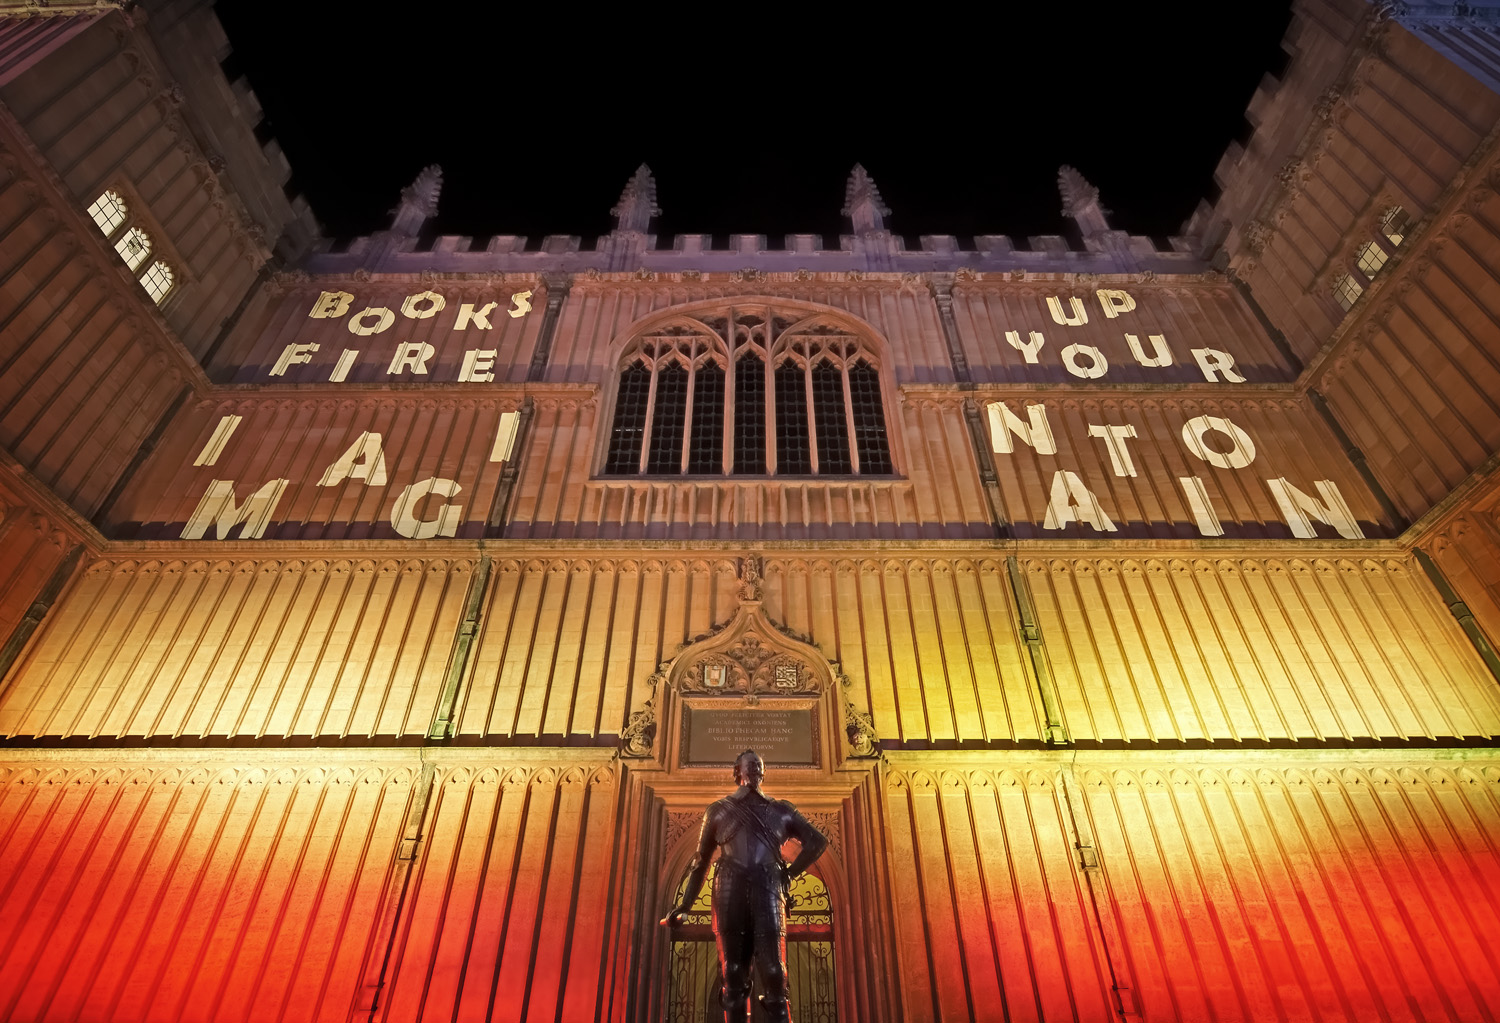 The Bodleian Library in Oxford lit up for the 2017 Night of Heritage Light.